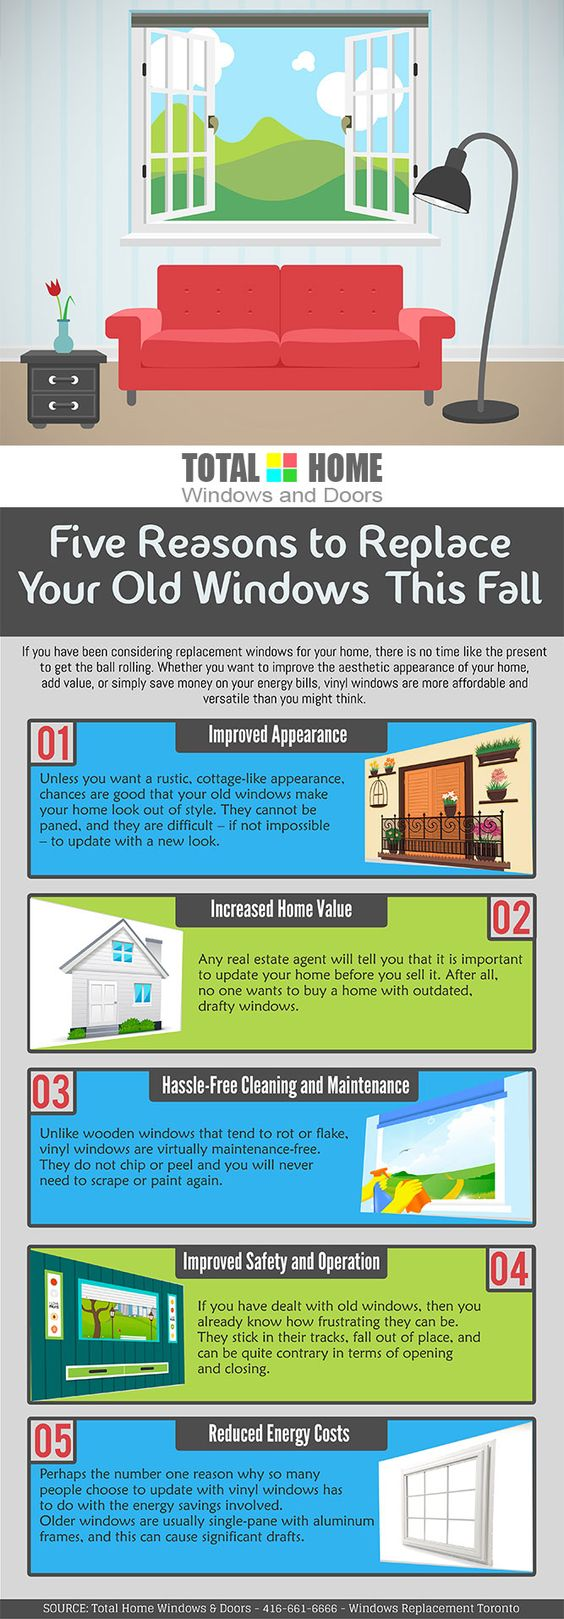 Five Reasons to Replace Your Old Windows This Fall